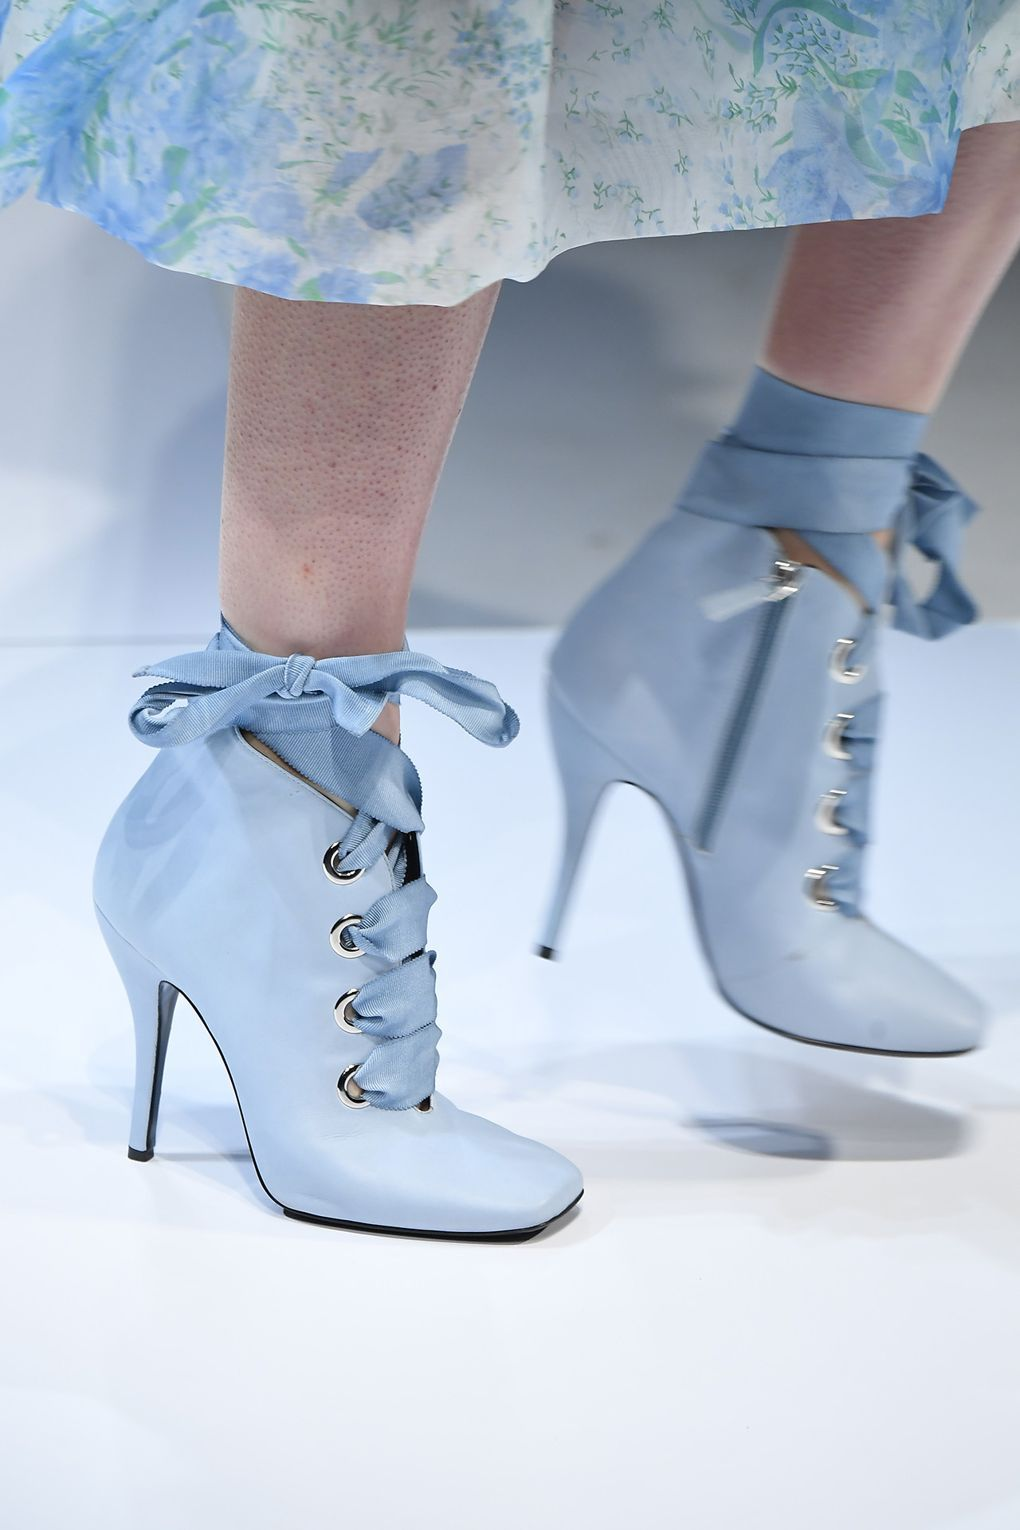 f3a132f77cf7 Vogue s Ultimate Shoe Trend Guide Spring Summer 2018